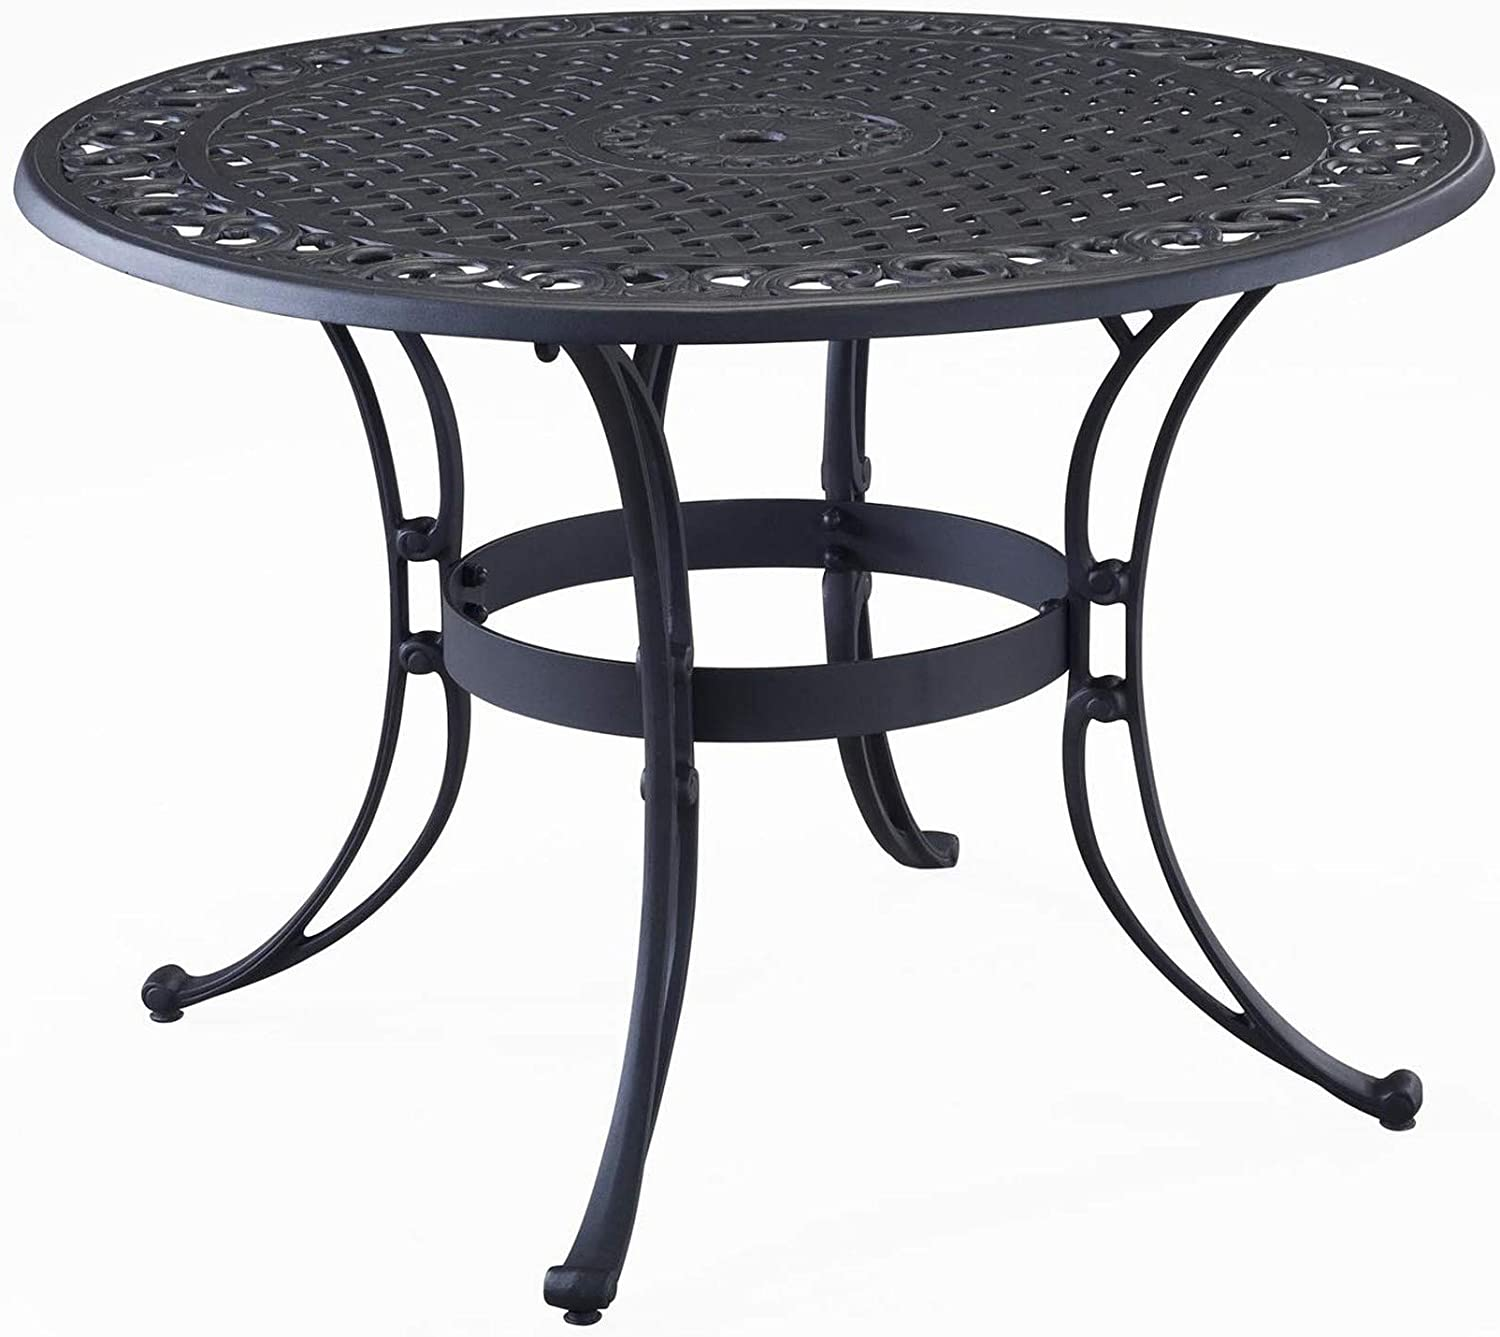 homestyles 6654-32 Outdoor Dining Table, 48Lx48Dx28.75H, Black